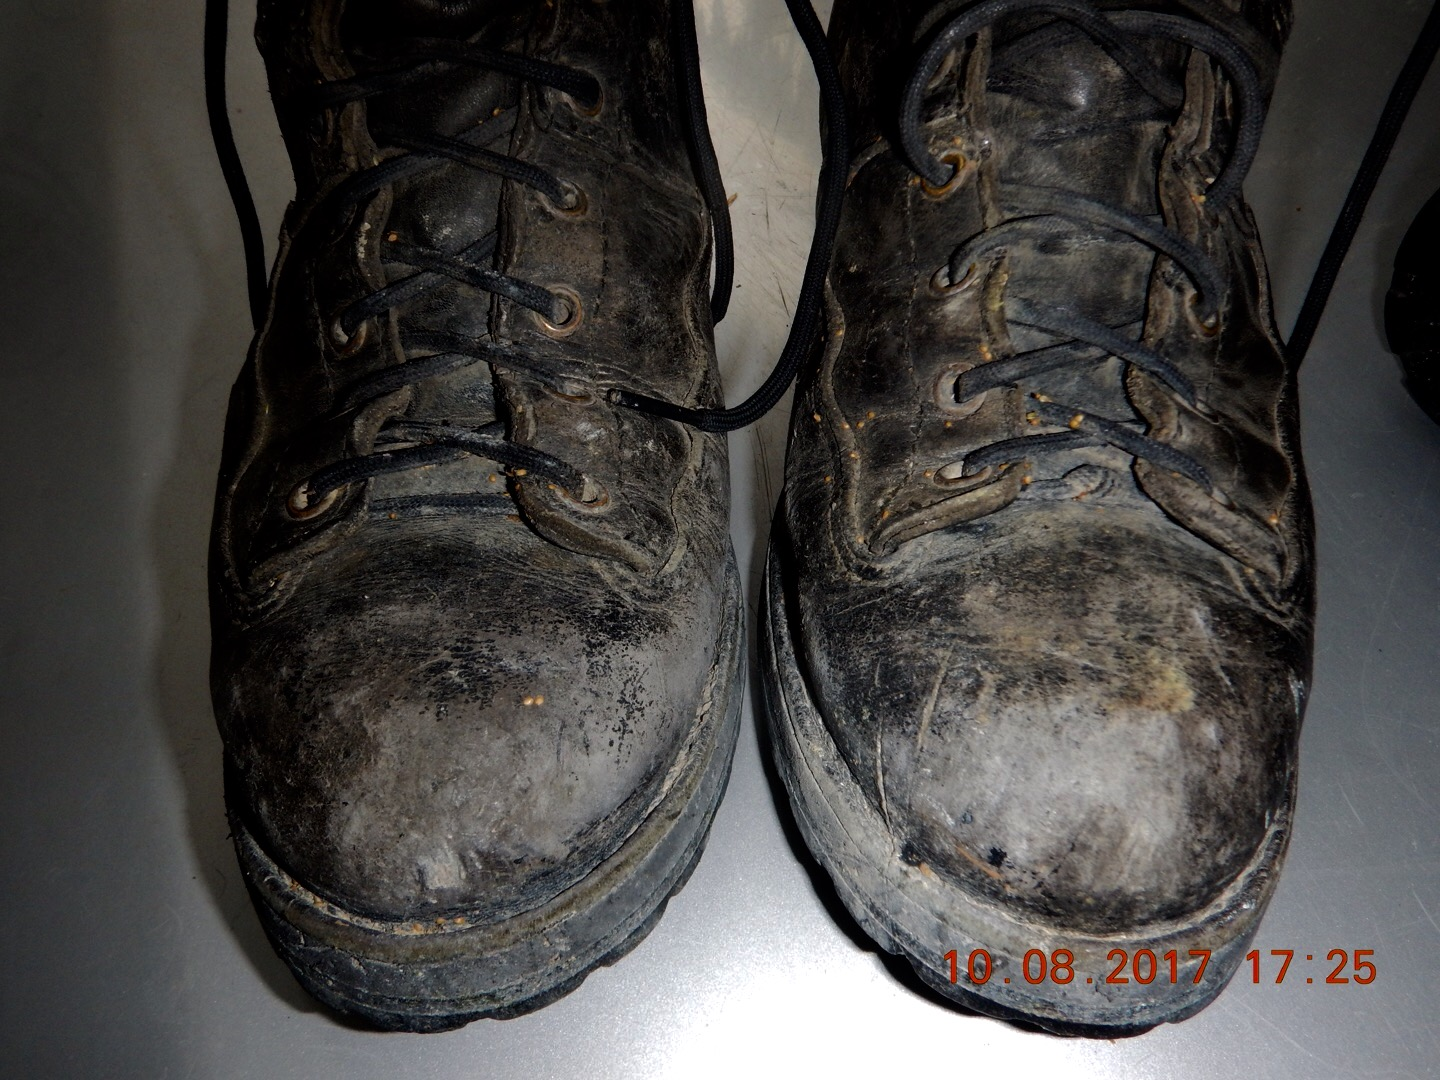 How to choose good work boots and care for them